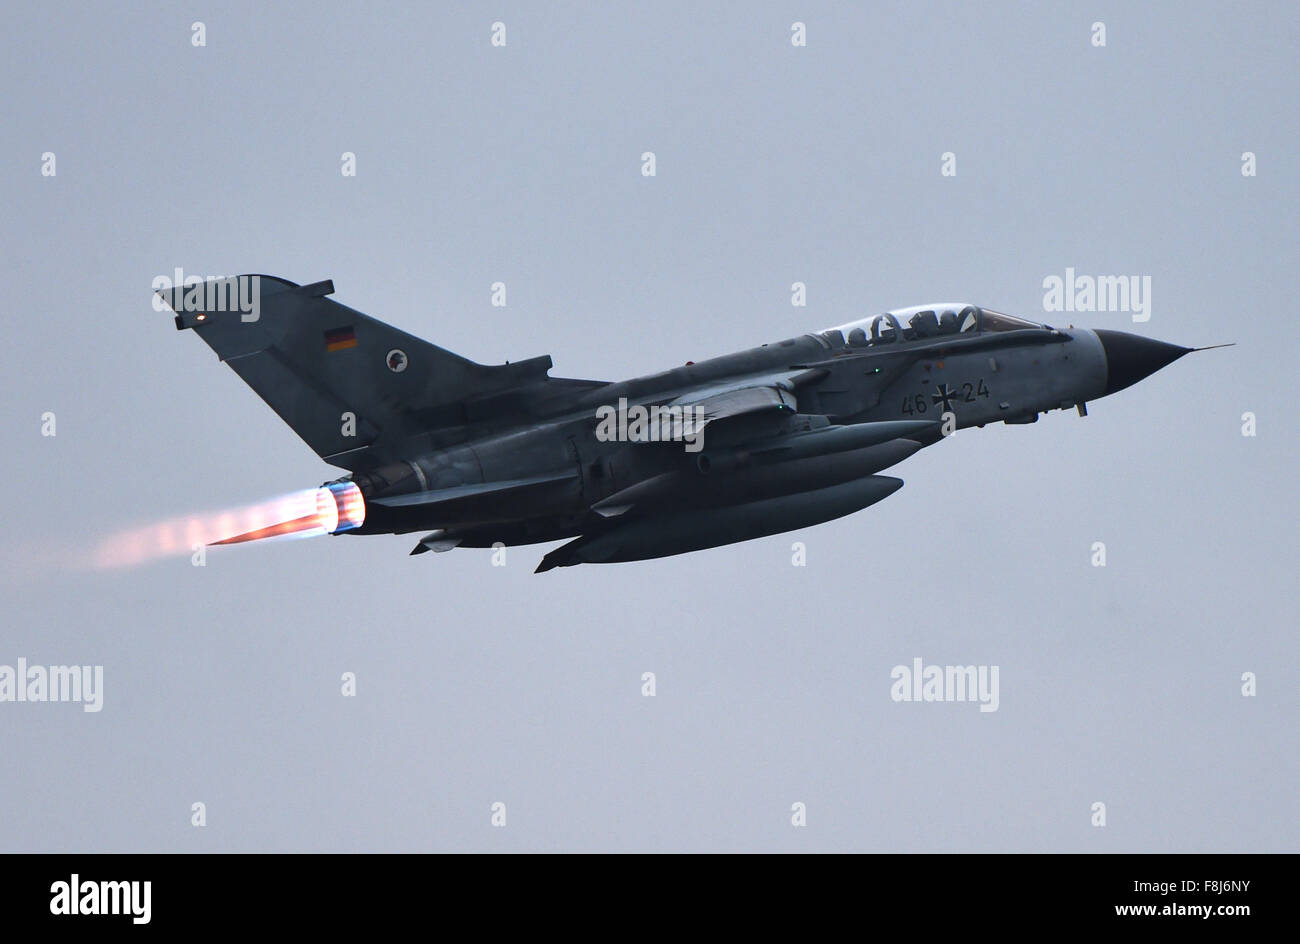 A Tornado combat aircraft headed to Turkey takes off at the Luftwaffe airbase in Jagel, Germany, 10 December 2015. - Stock Image